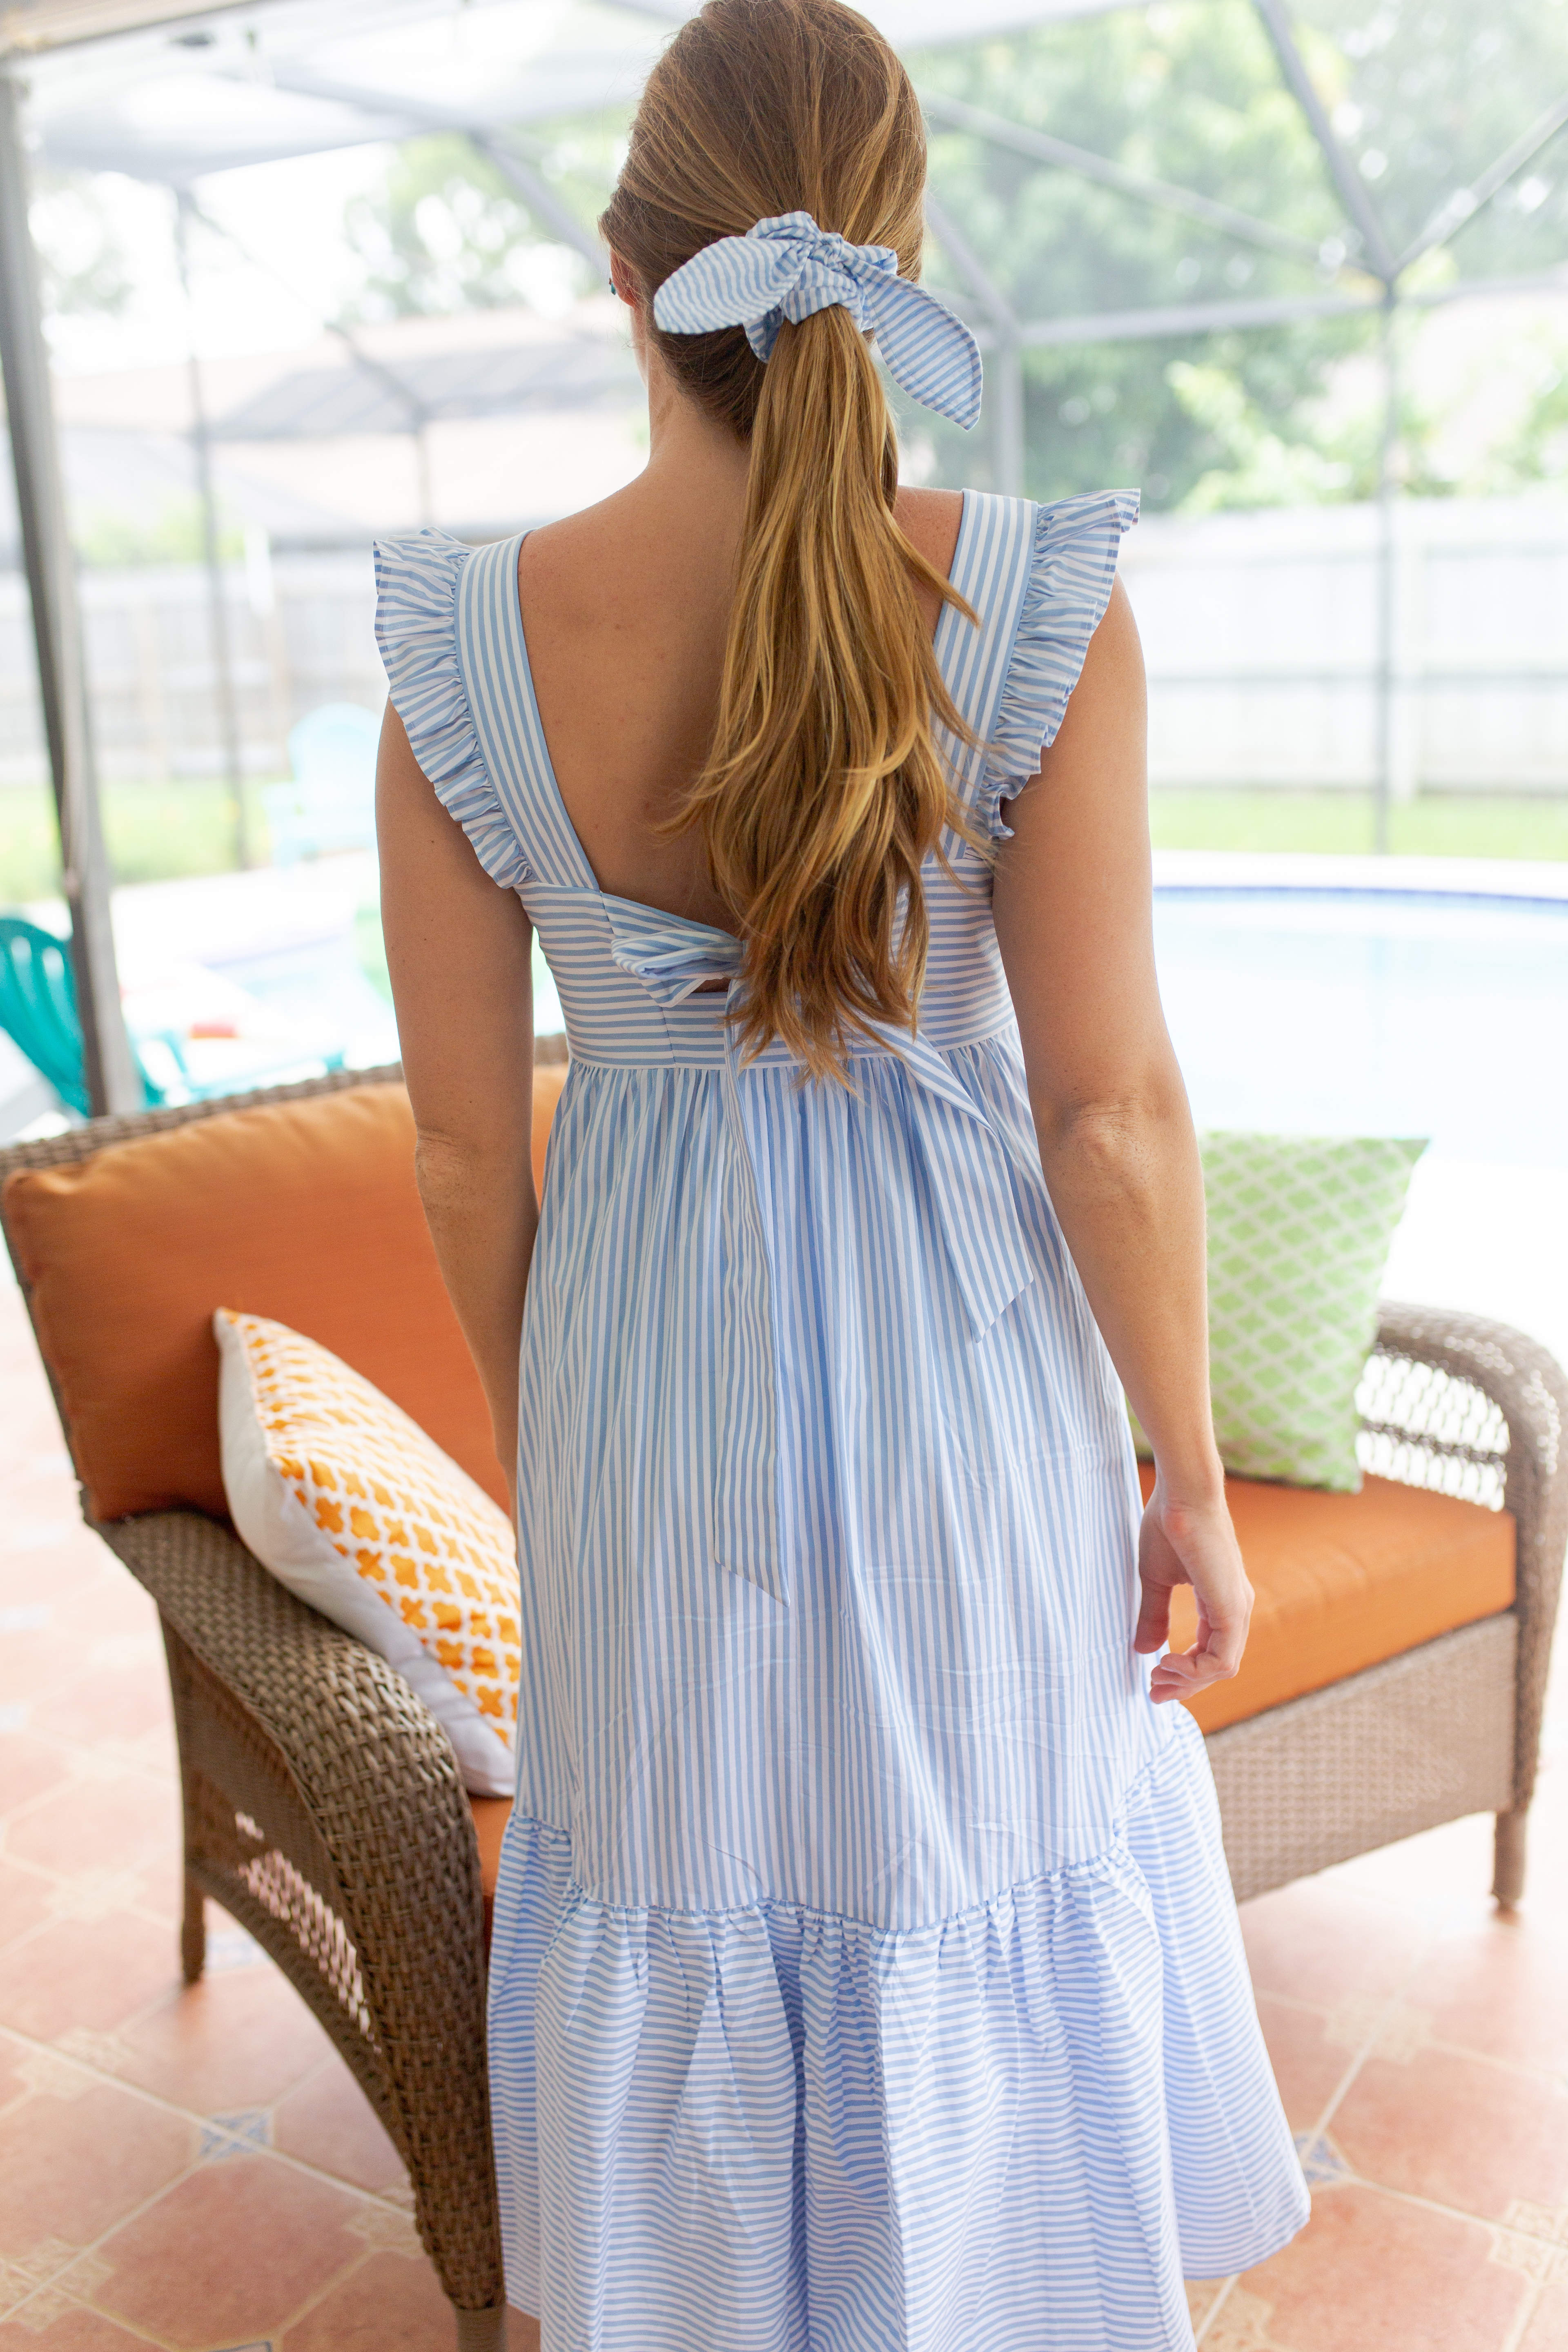 Gal Meets Glam Review / What to Wear in The Summer / How to Style a Maxi Dress / How to Wear a Maxi Dress / How to Dress Cute in Warm Weather / Warm-Weather Outfit Inspiration / Summer Outfit Inspiration - Sunshine Style, A Florida based Fashion and Lifestyle Blog by Katie McCarty